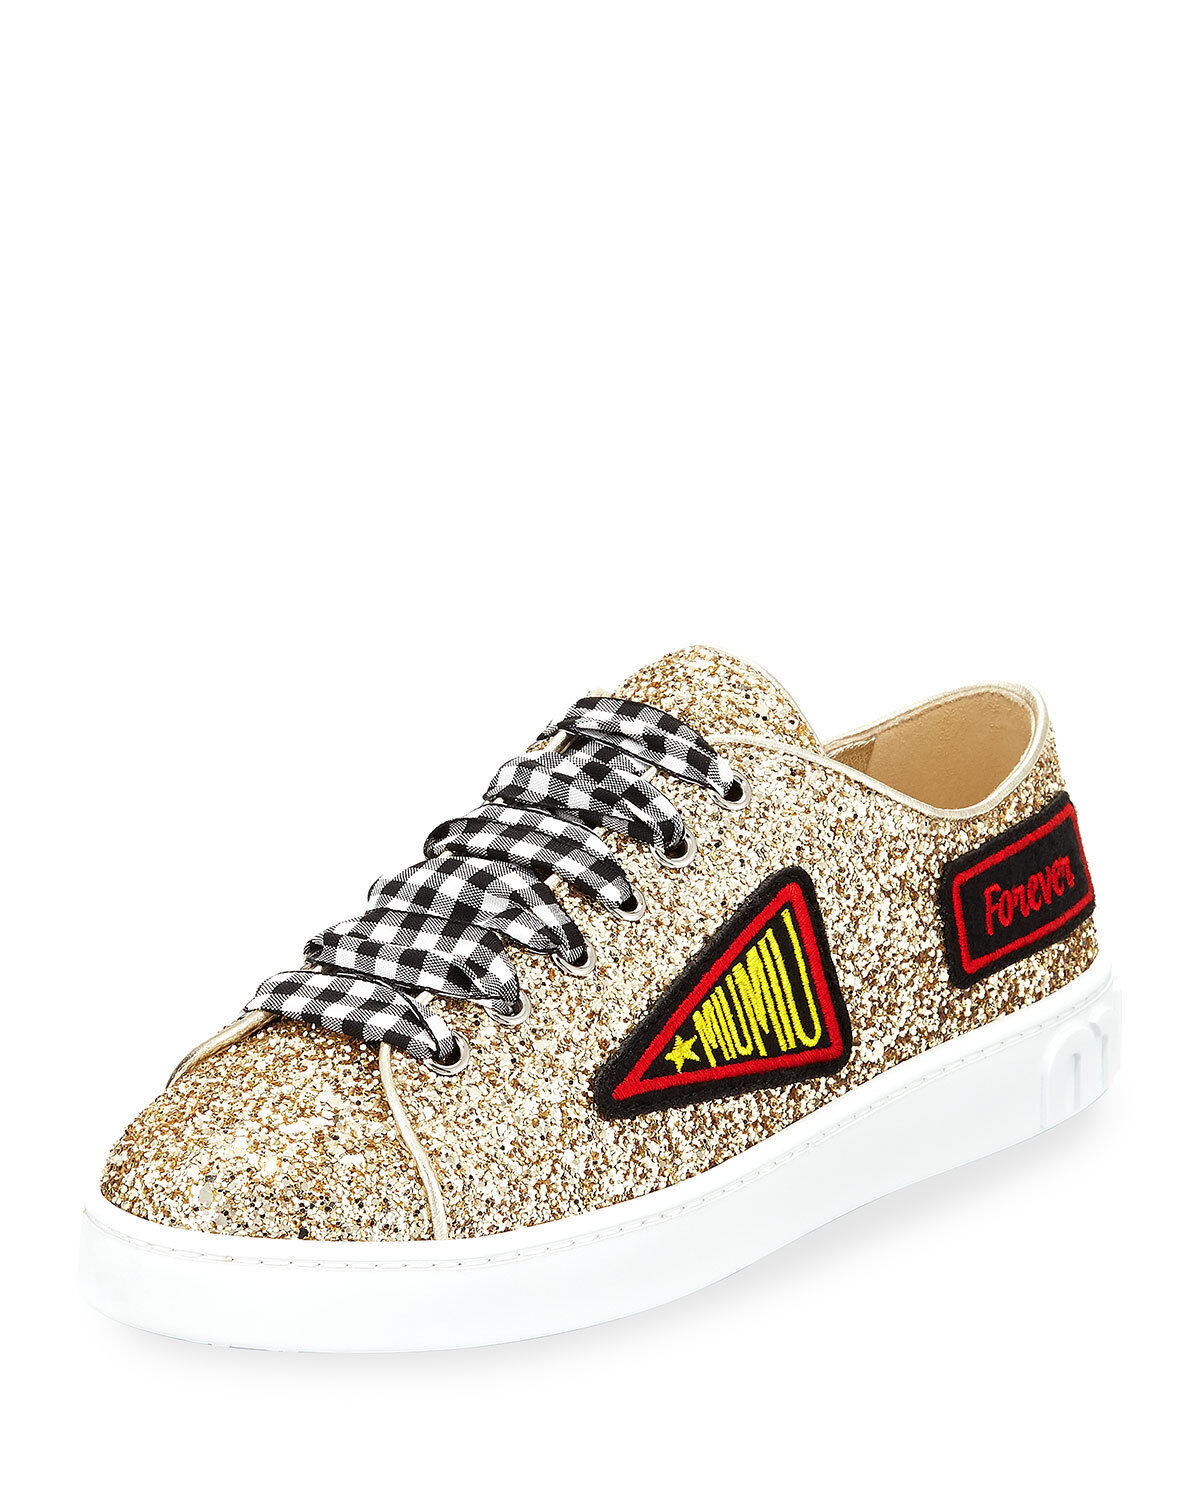 Miu Miu Glitter Sneakers MSRP: with Patches, Gold Size 41 MSRP: Sneakers $650.00 c7a45a